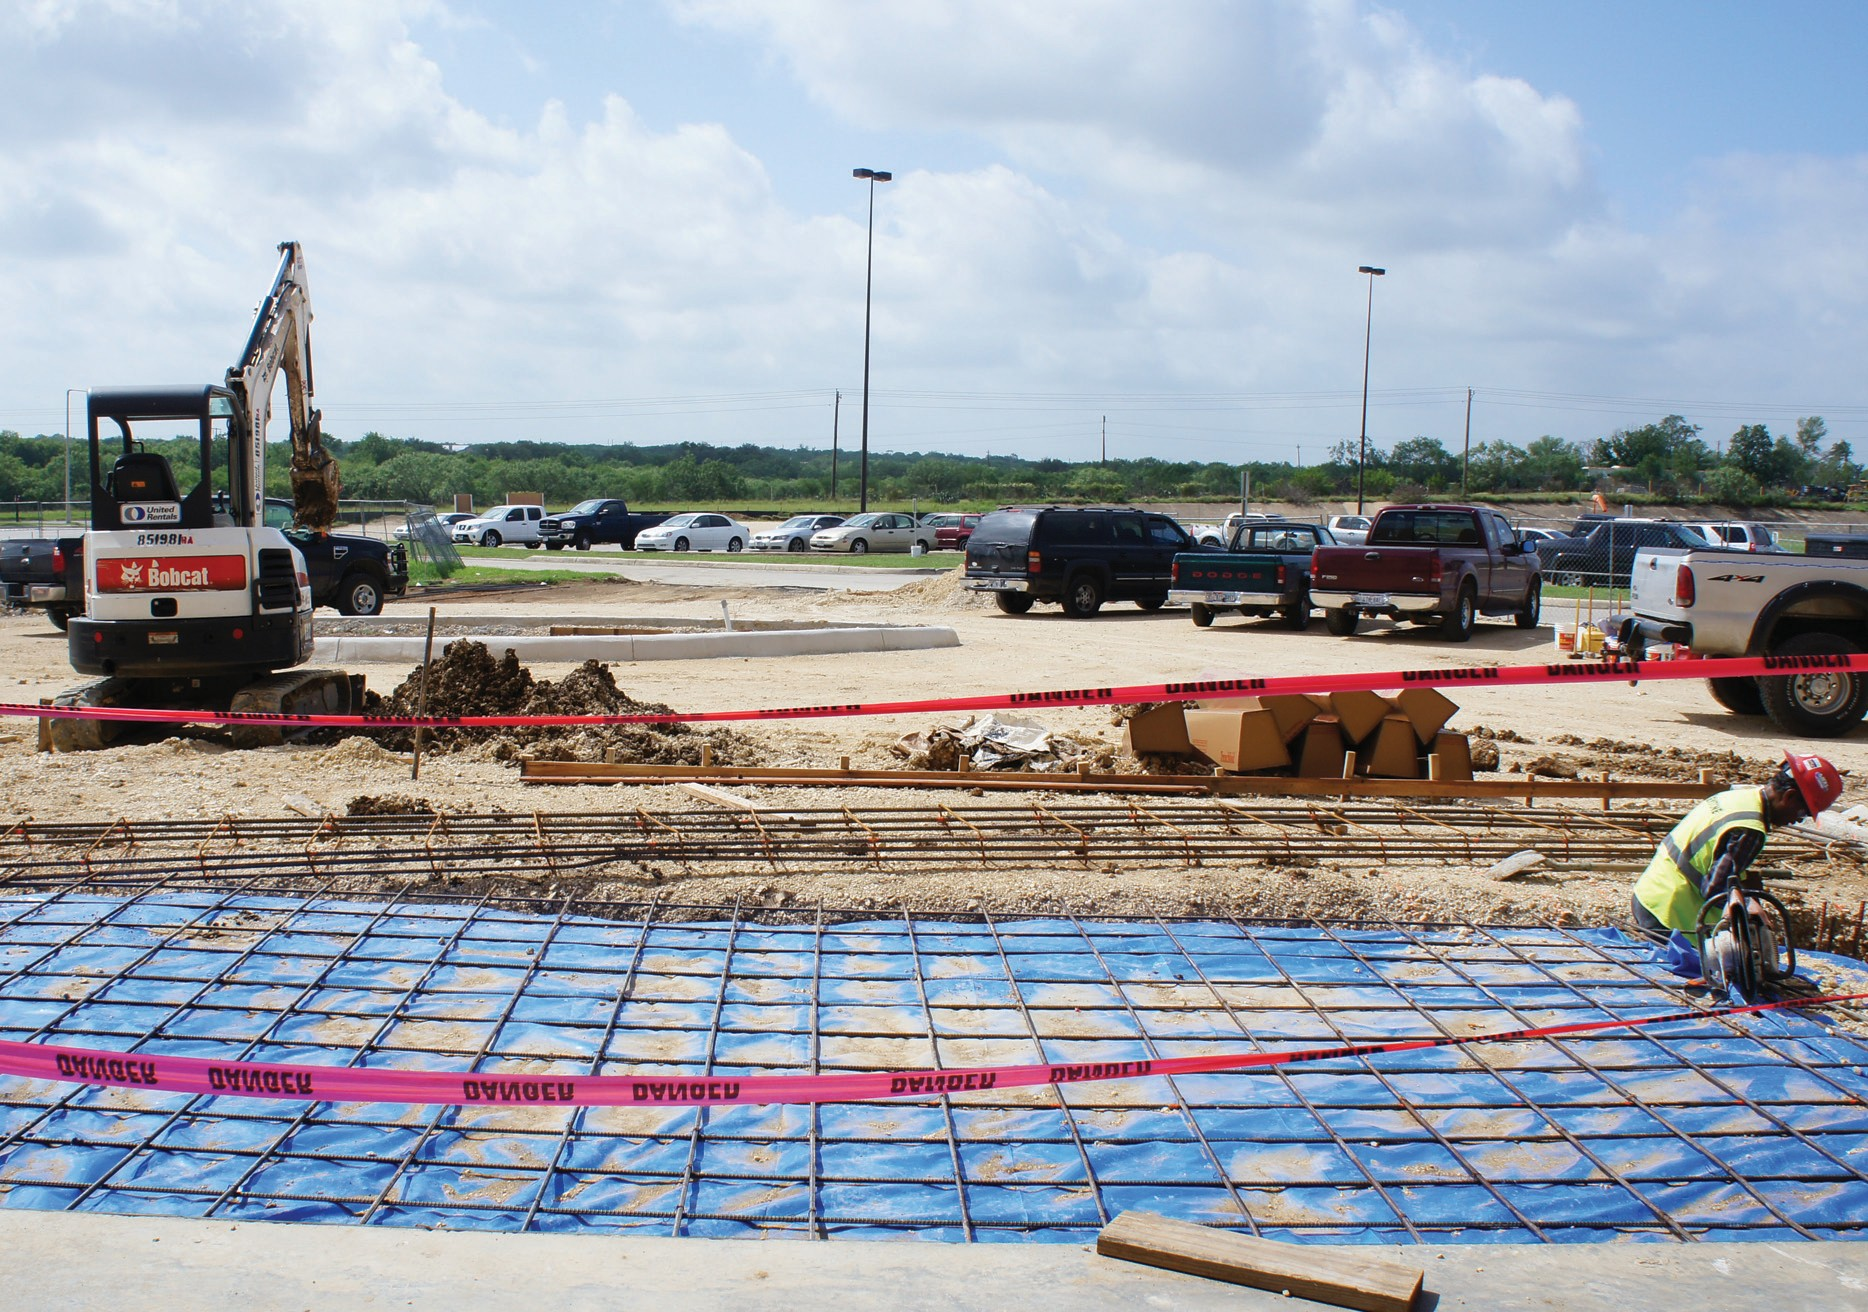 Shown is ongoing construction at the area in front of South Texas Medical Plaza, which will reroute the drop-off area.